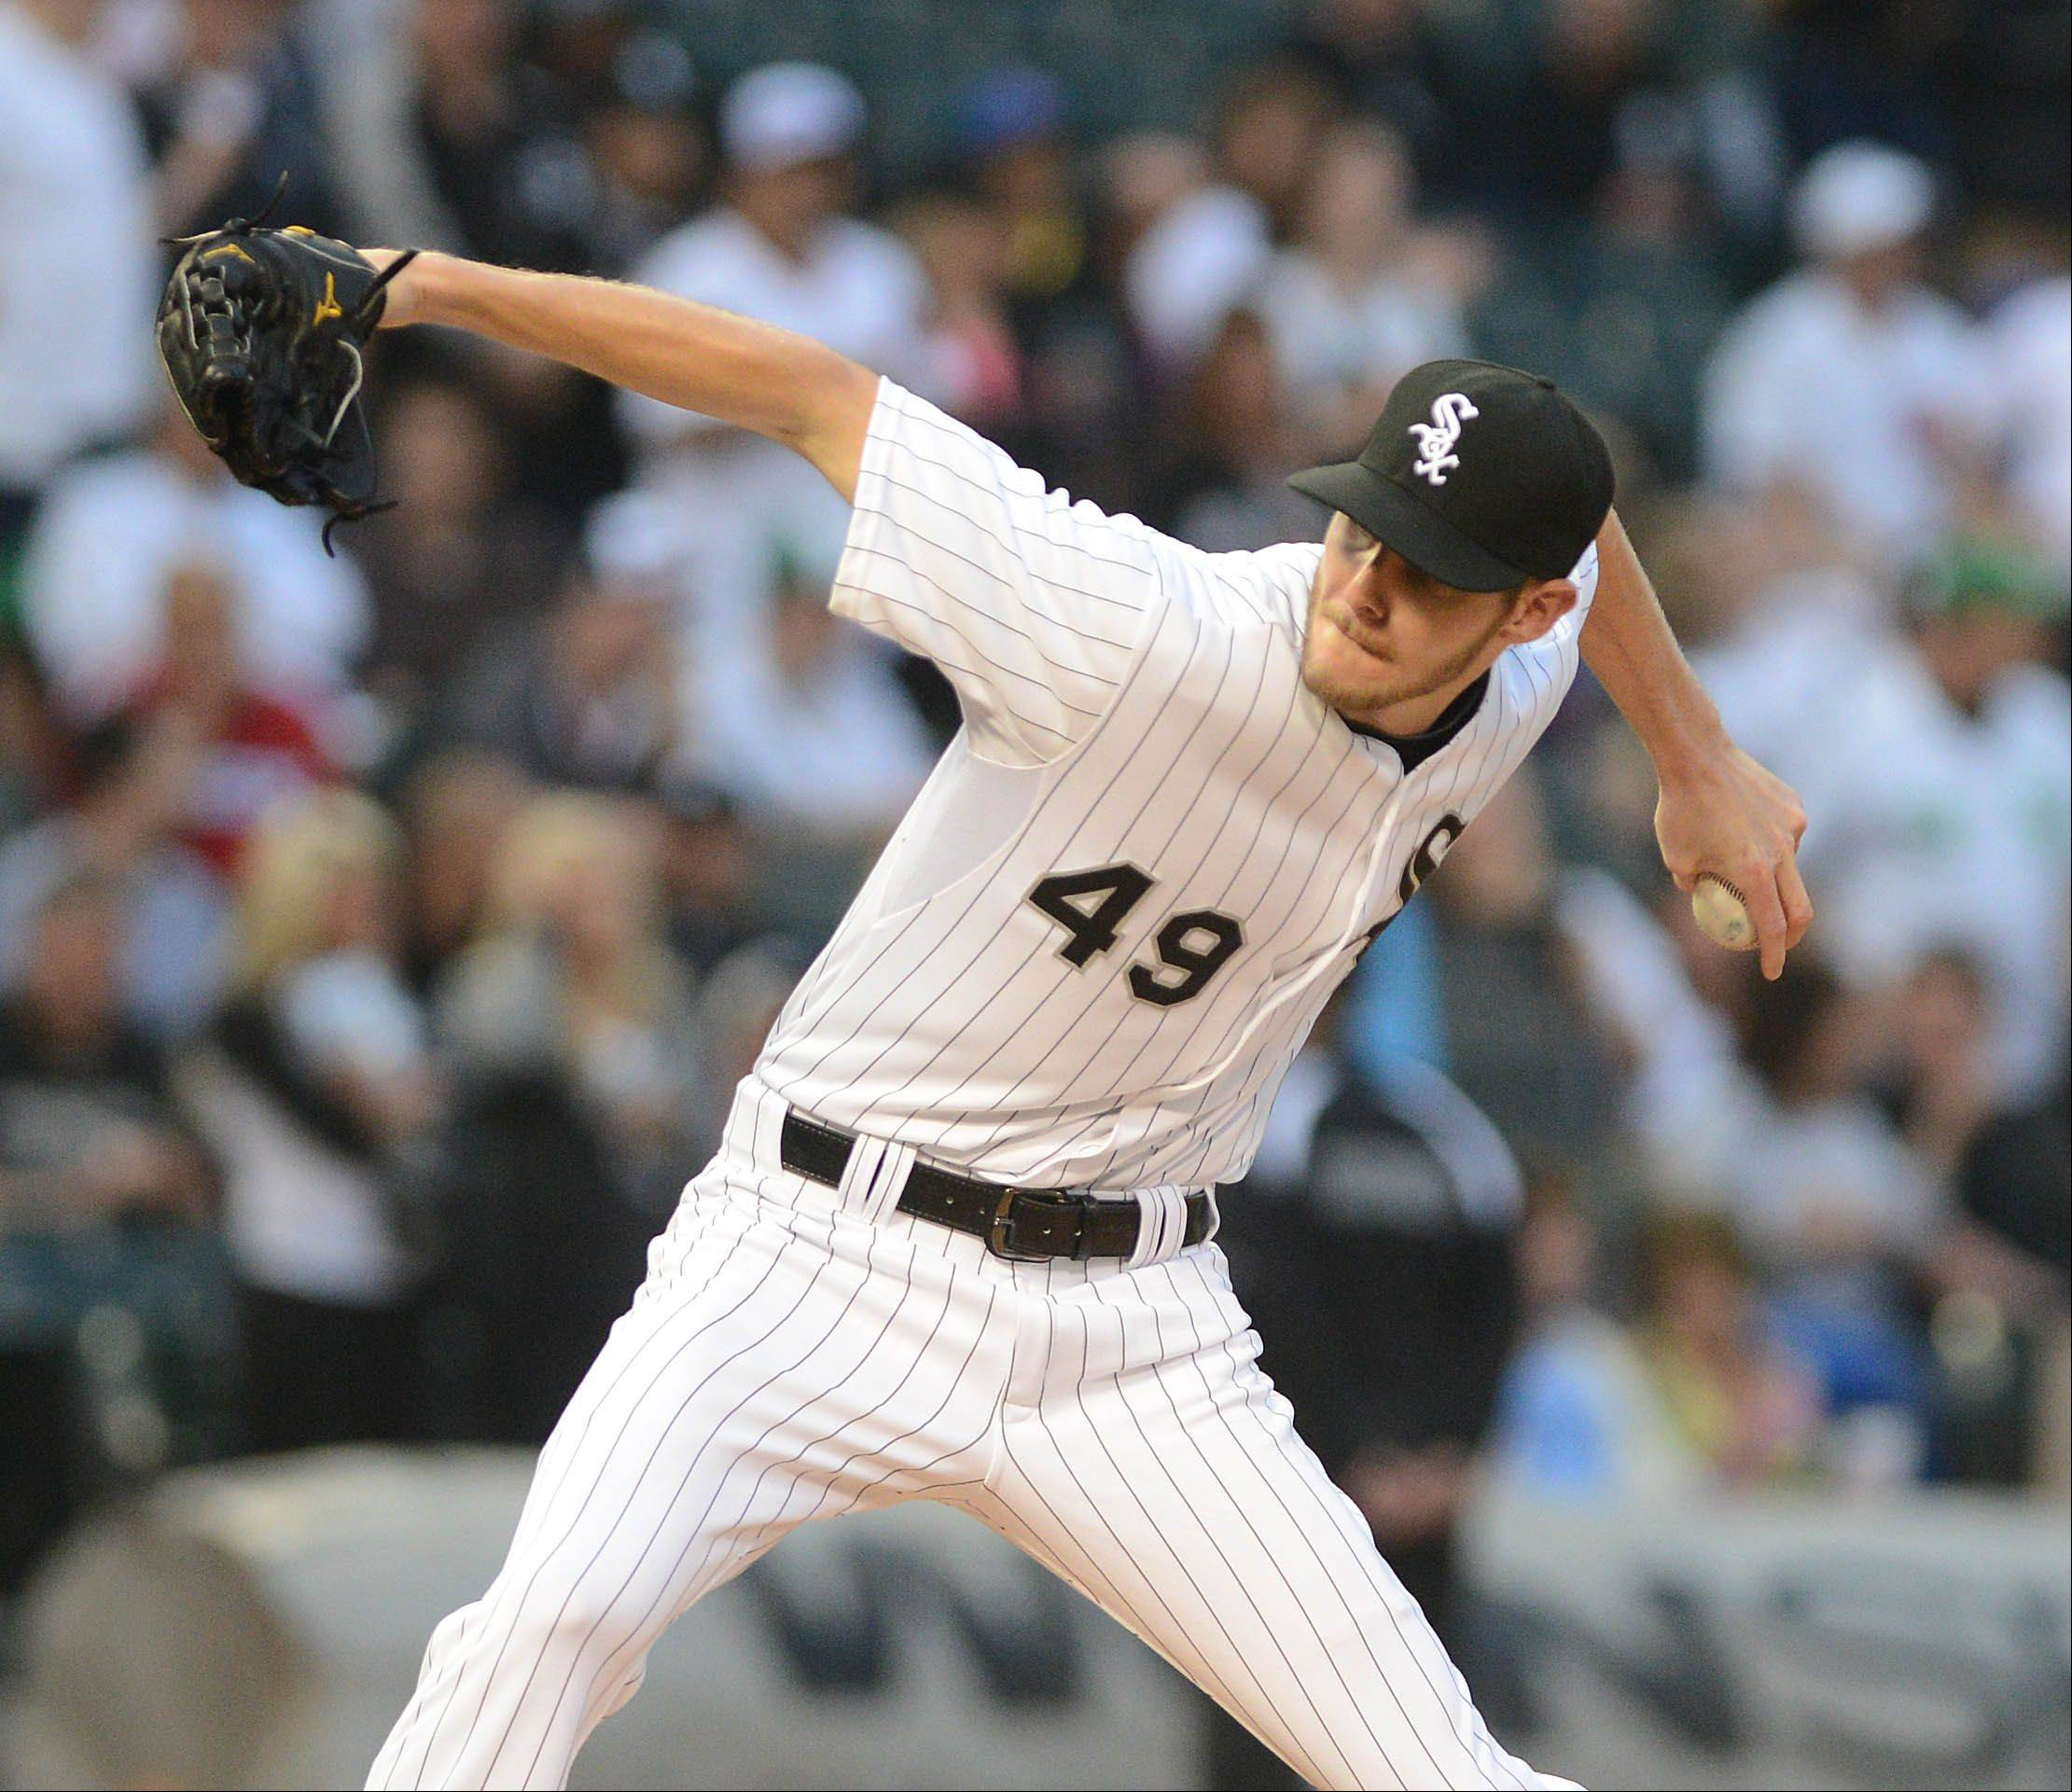 Chris Sale, who had missed his previous start with shoulder tendinitis, said he felt strong after working 3 innings before rain washed out the rest of Tuesday night�s game.